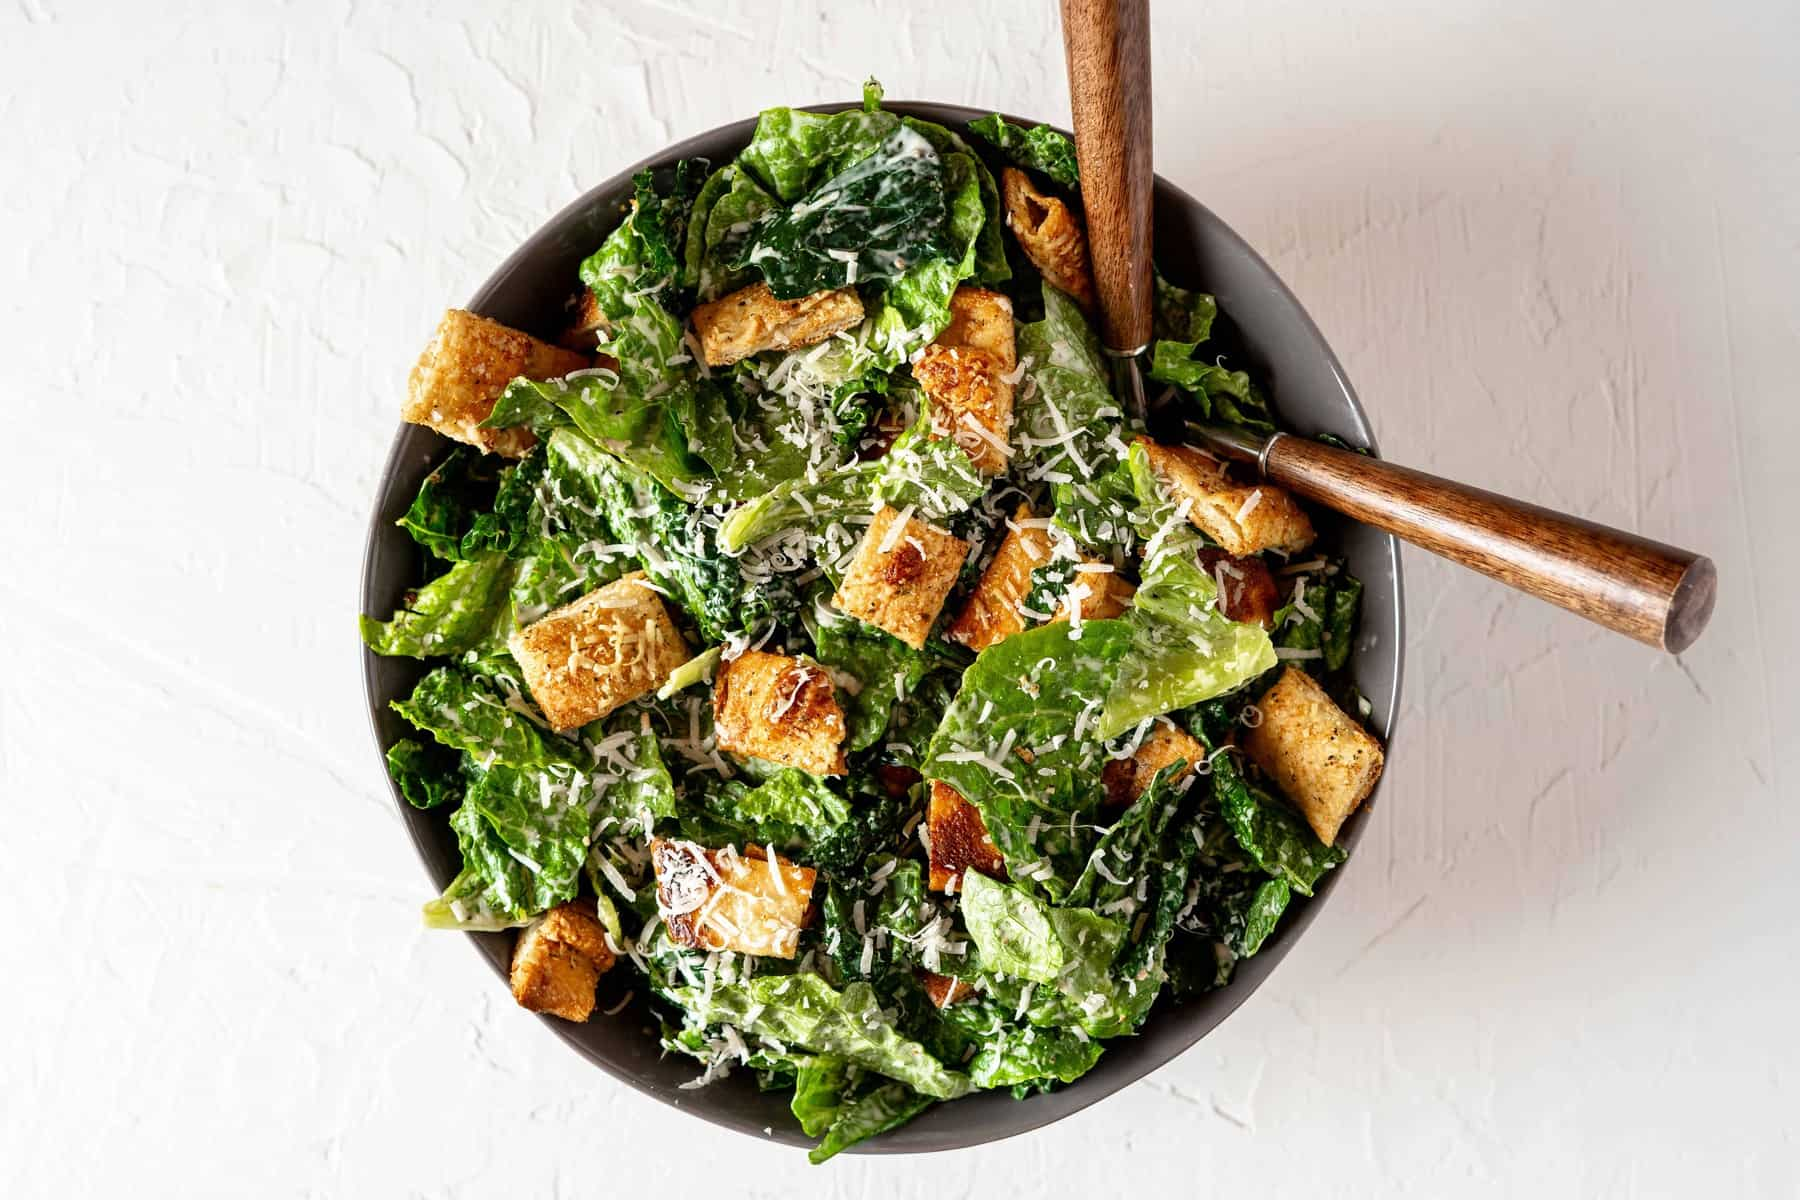 Kale Caesar Salad with Pizza Crust Croutons